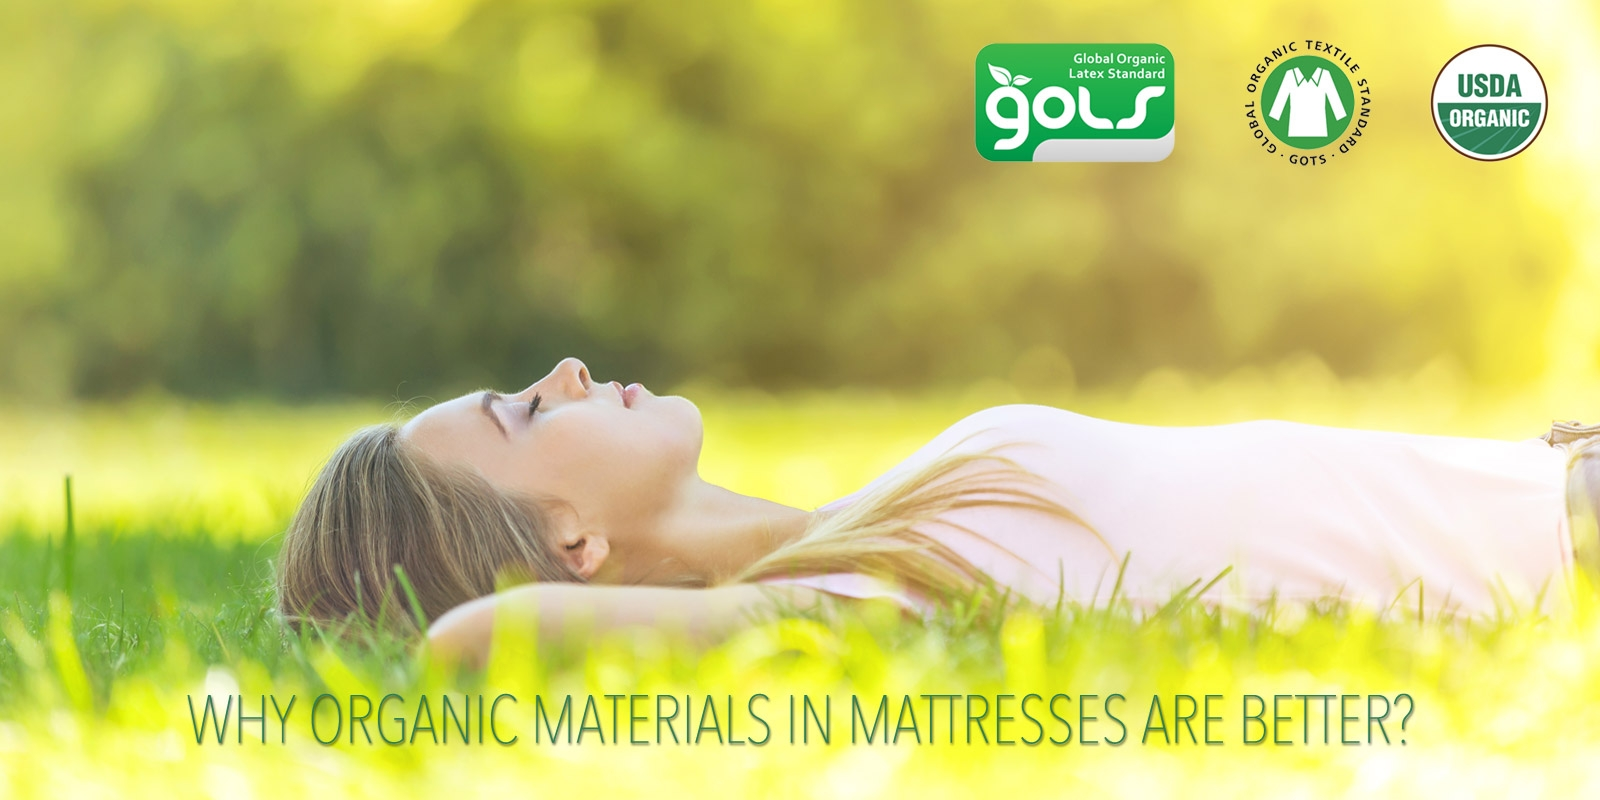 Why Organic Mattresses are Better